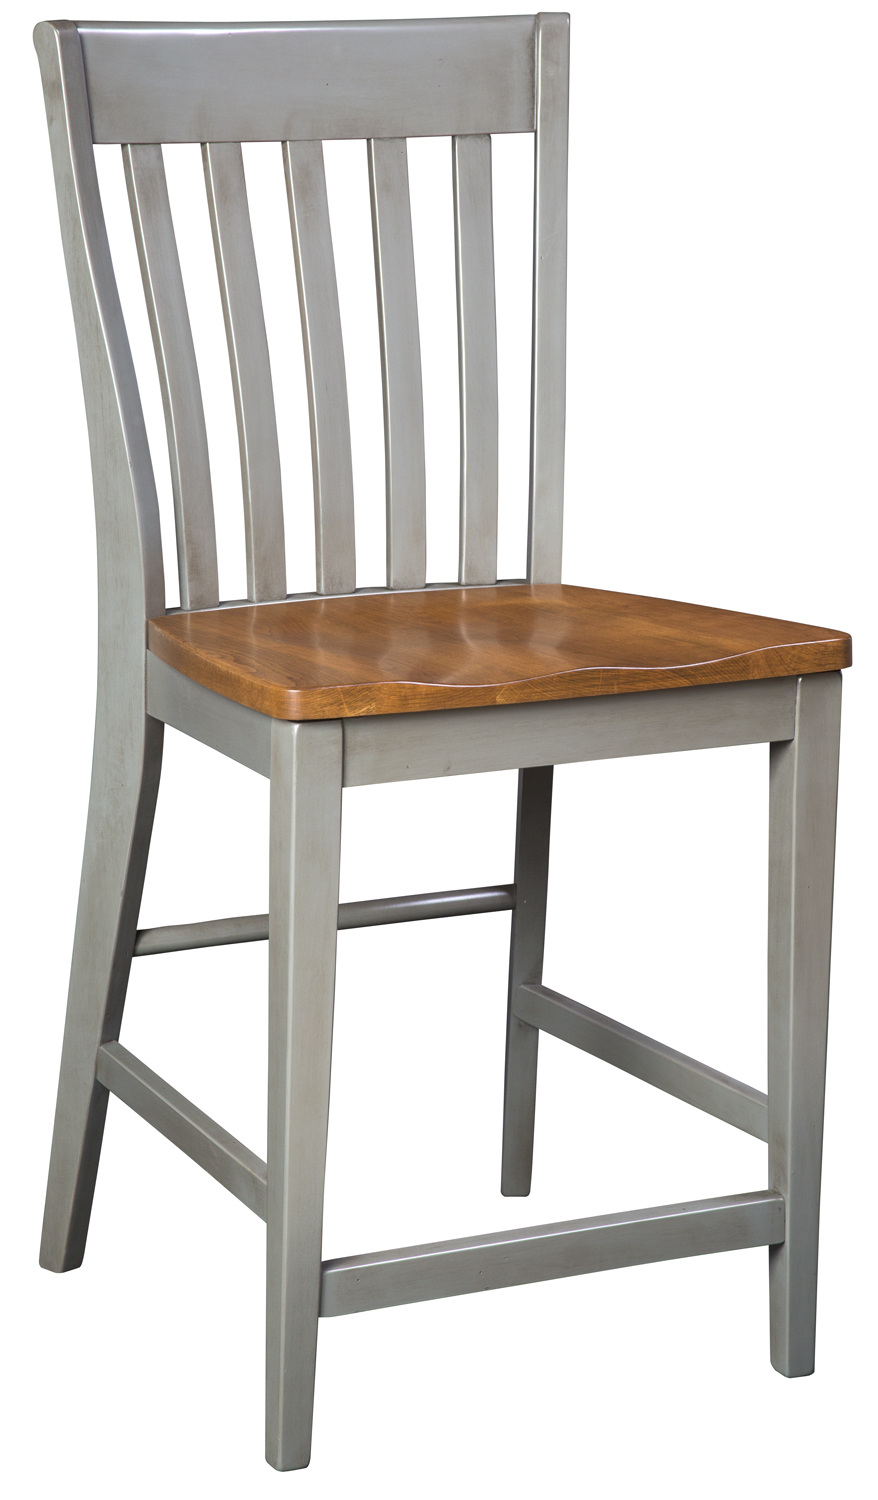 The Club Stool Image